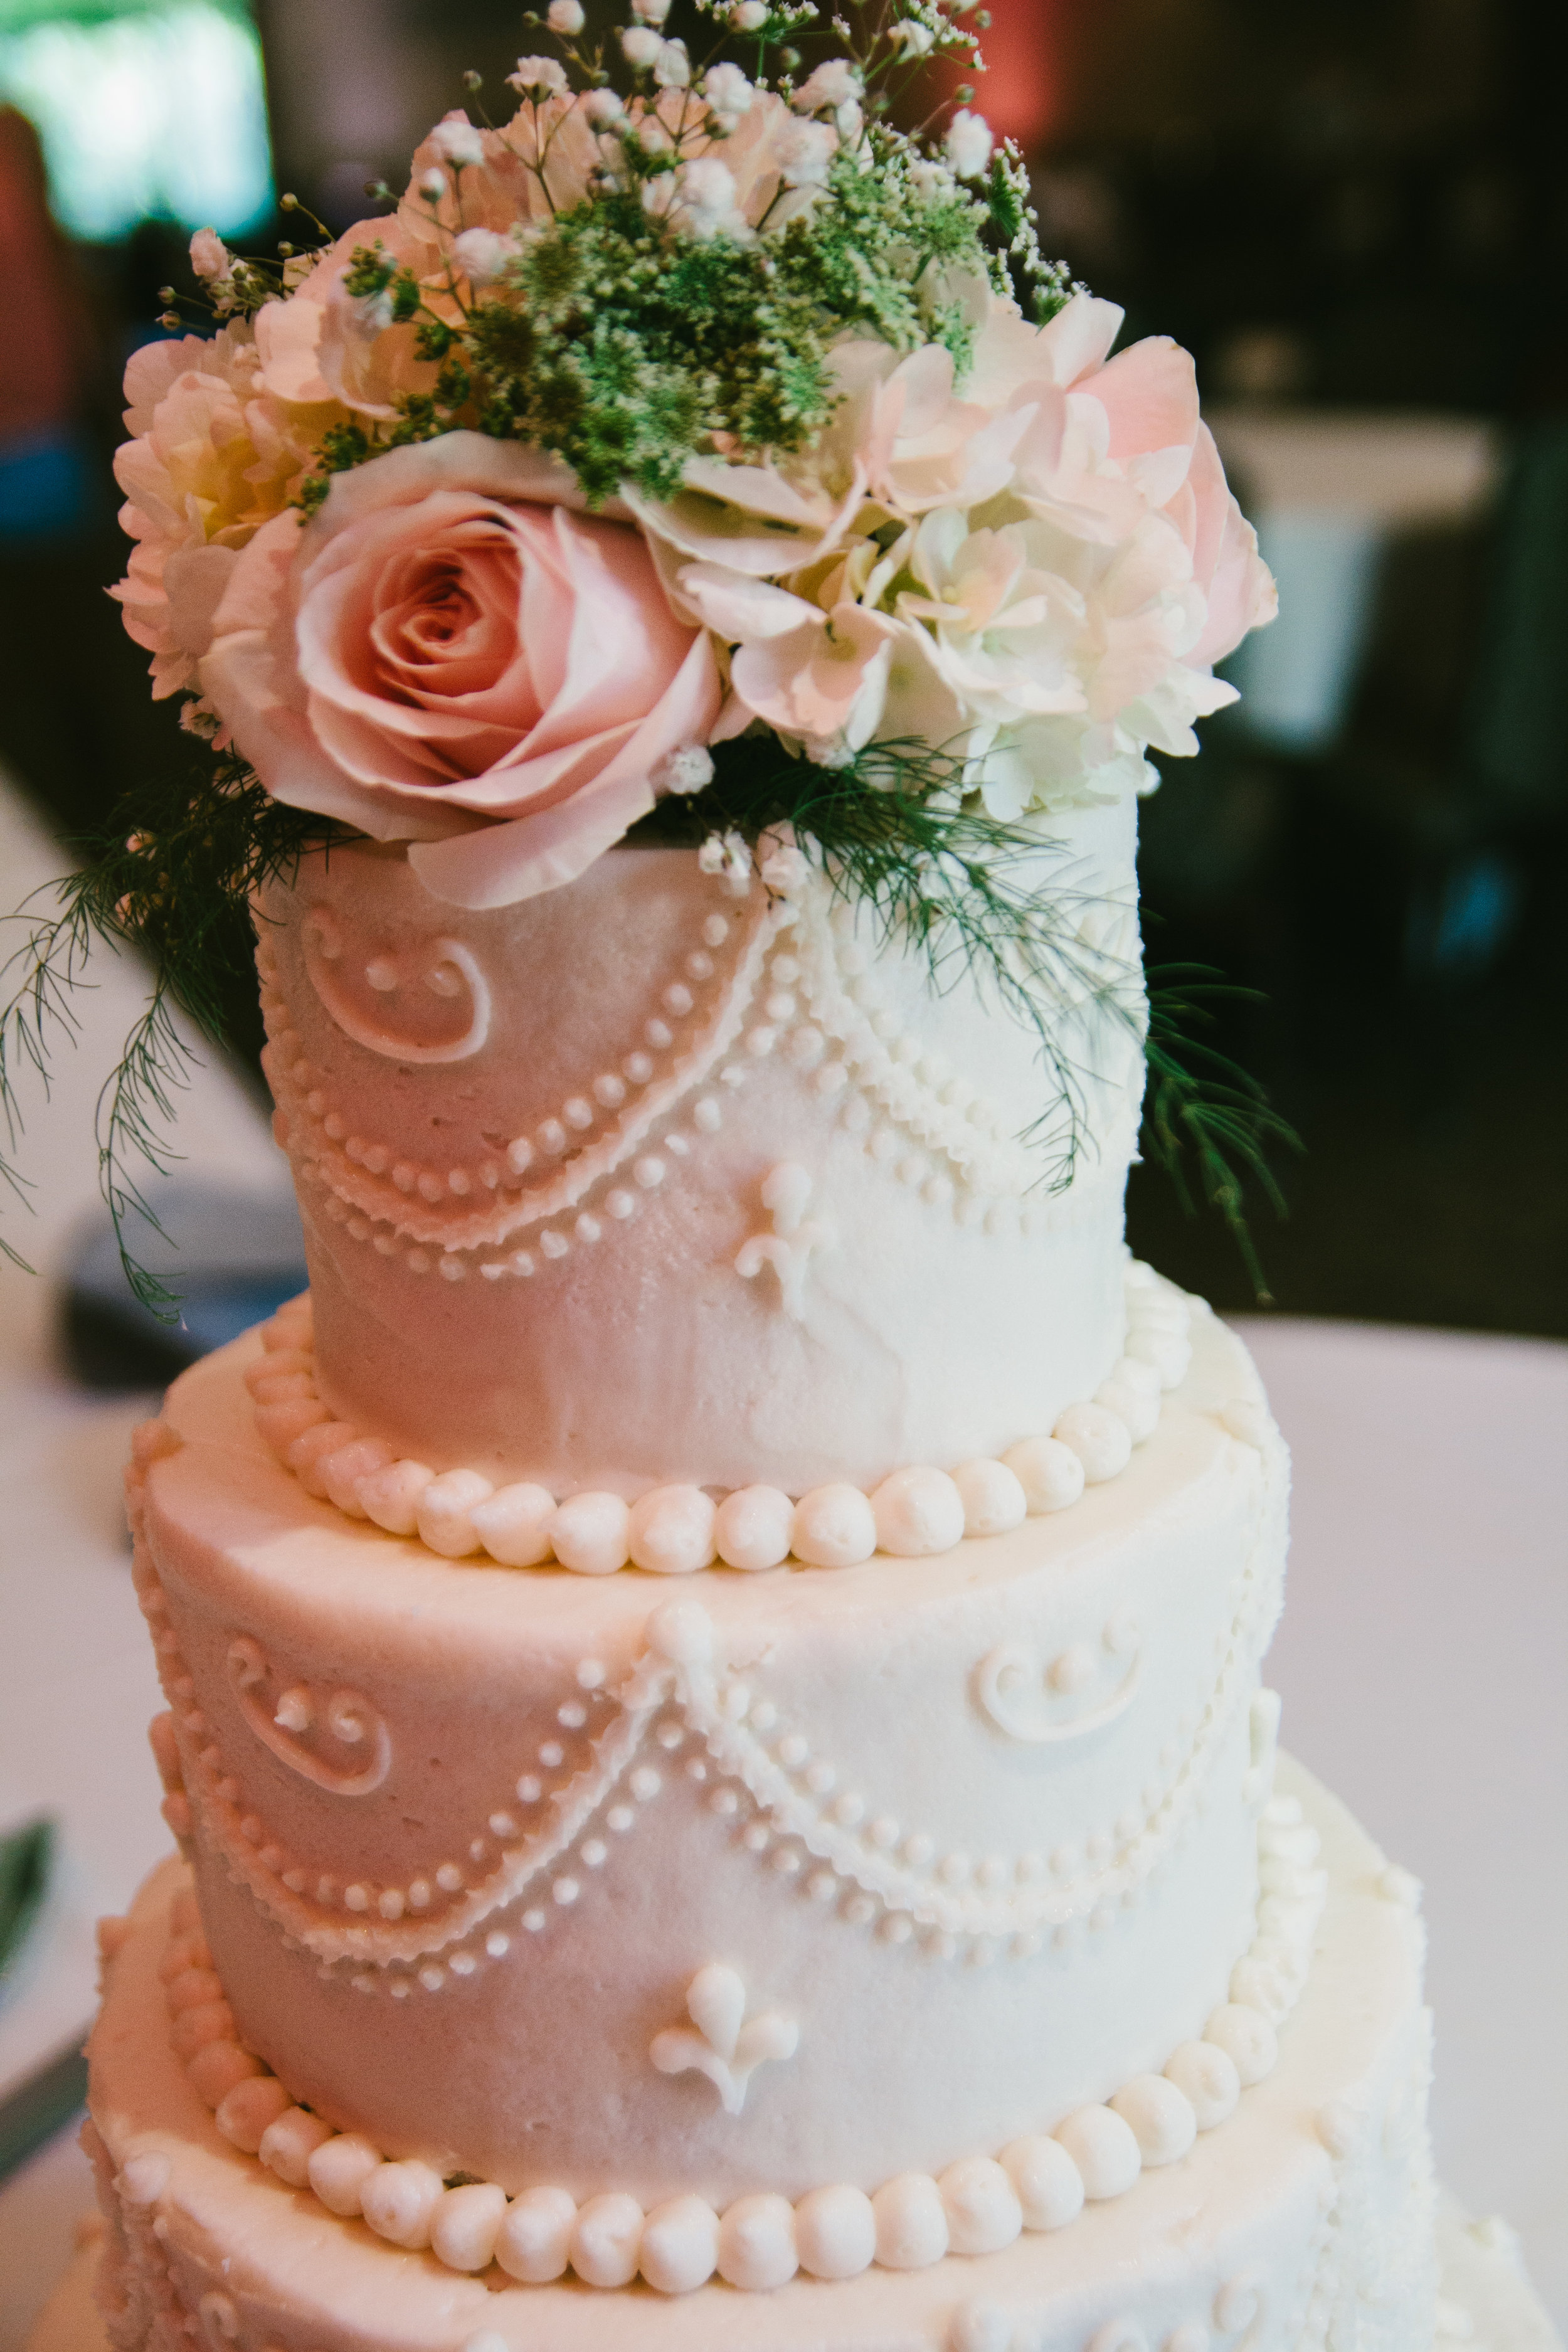 All White Round Layered Wedding Cake - A Champagne + Blush Oklahoma Wedding - Meditations Event Center - From Britt's Eye View Photography